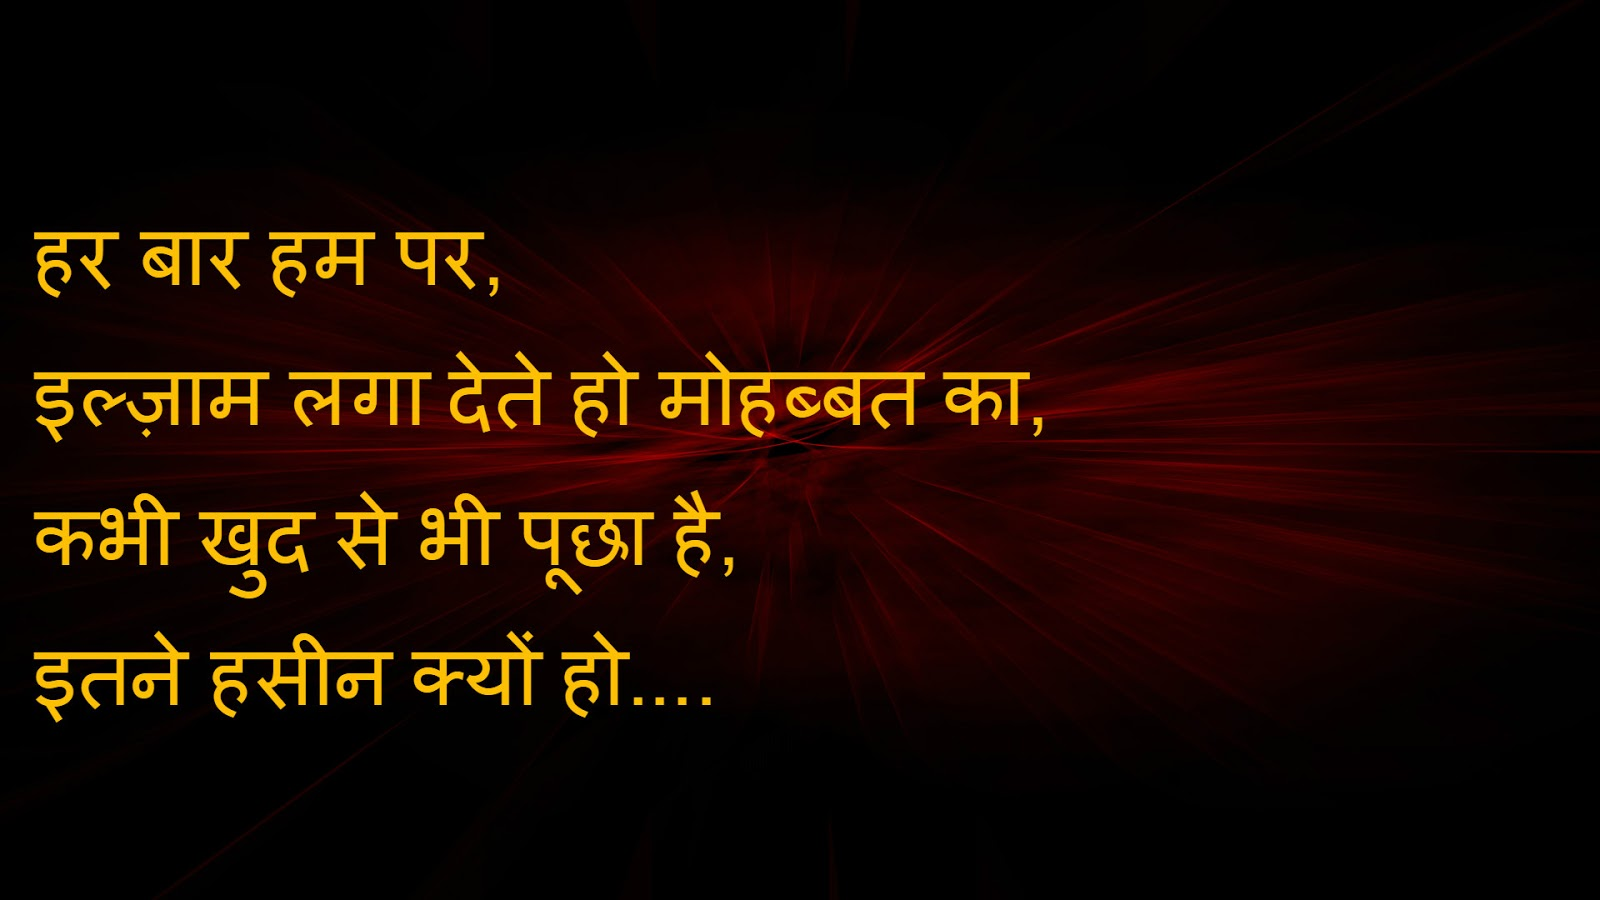 Love Shayri Wallpaper In English : Top30 Hindi Joke Shayari Dosti In English Love Romantic Image SMS Photos Pics Wallpapers